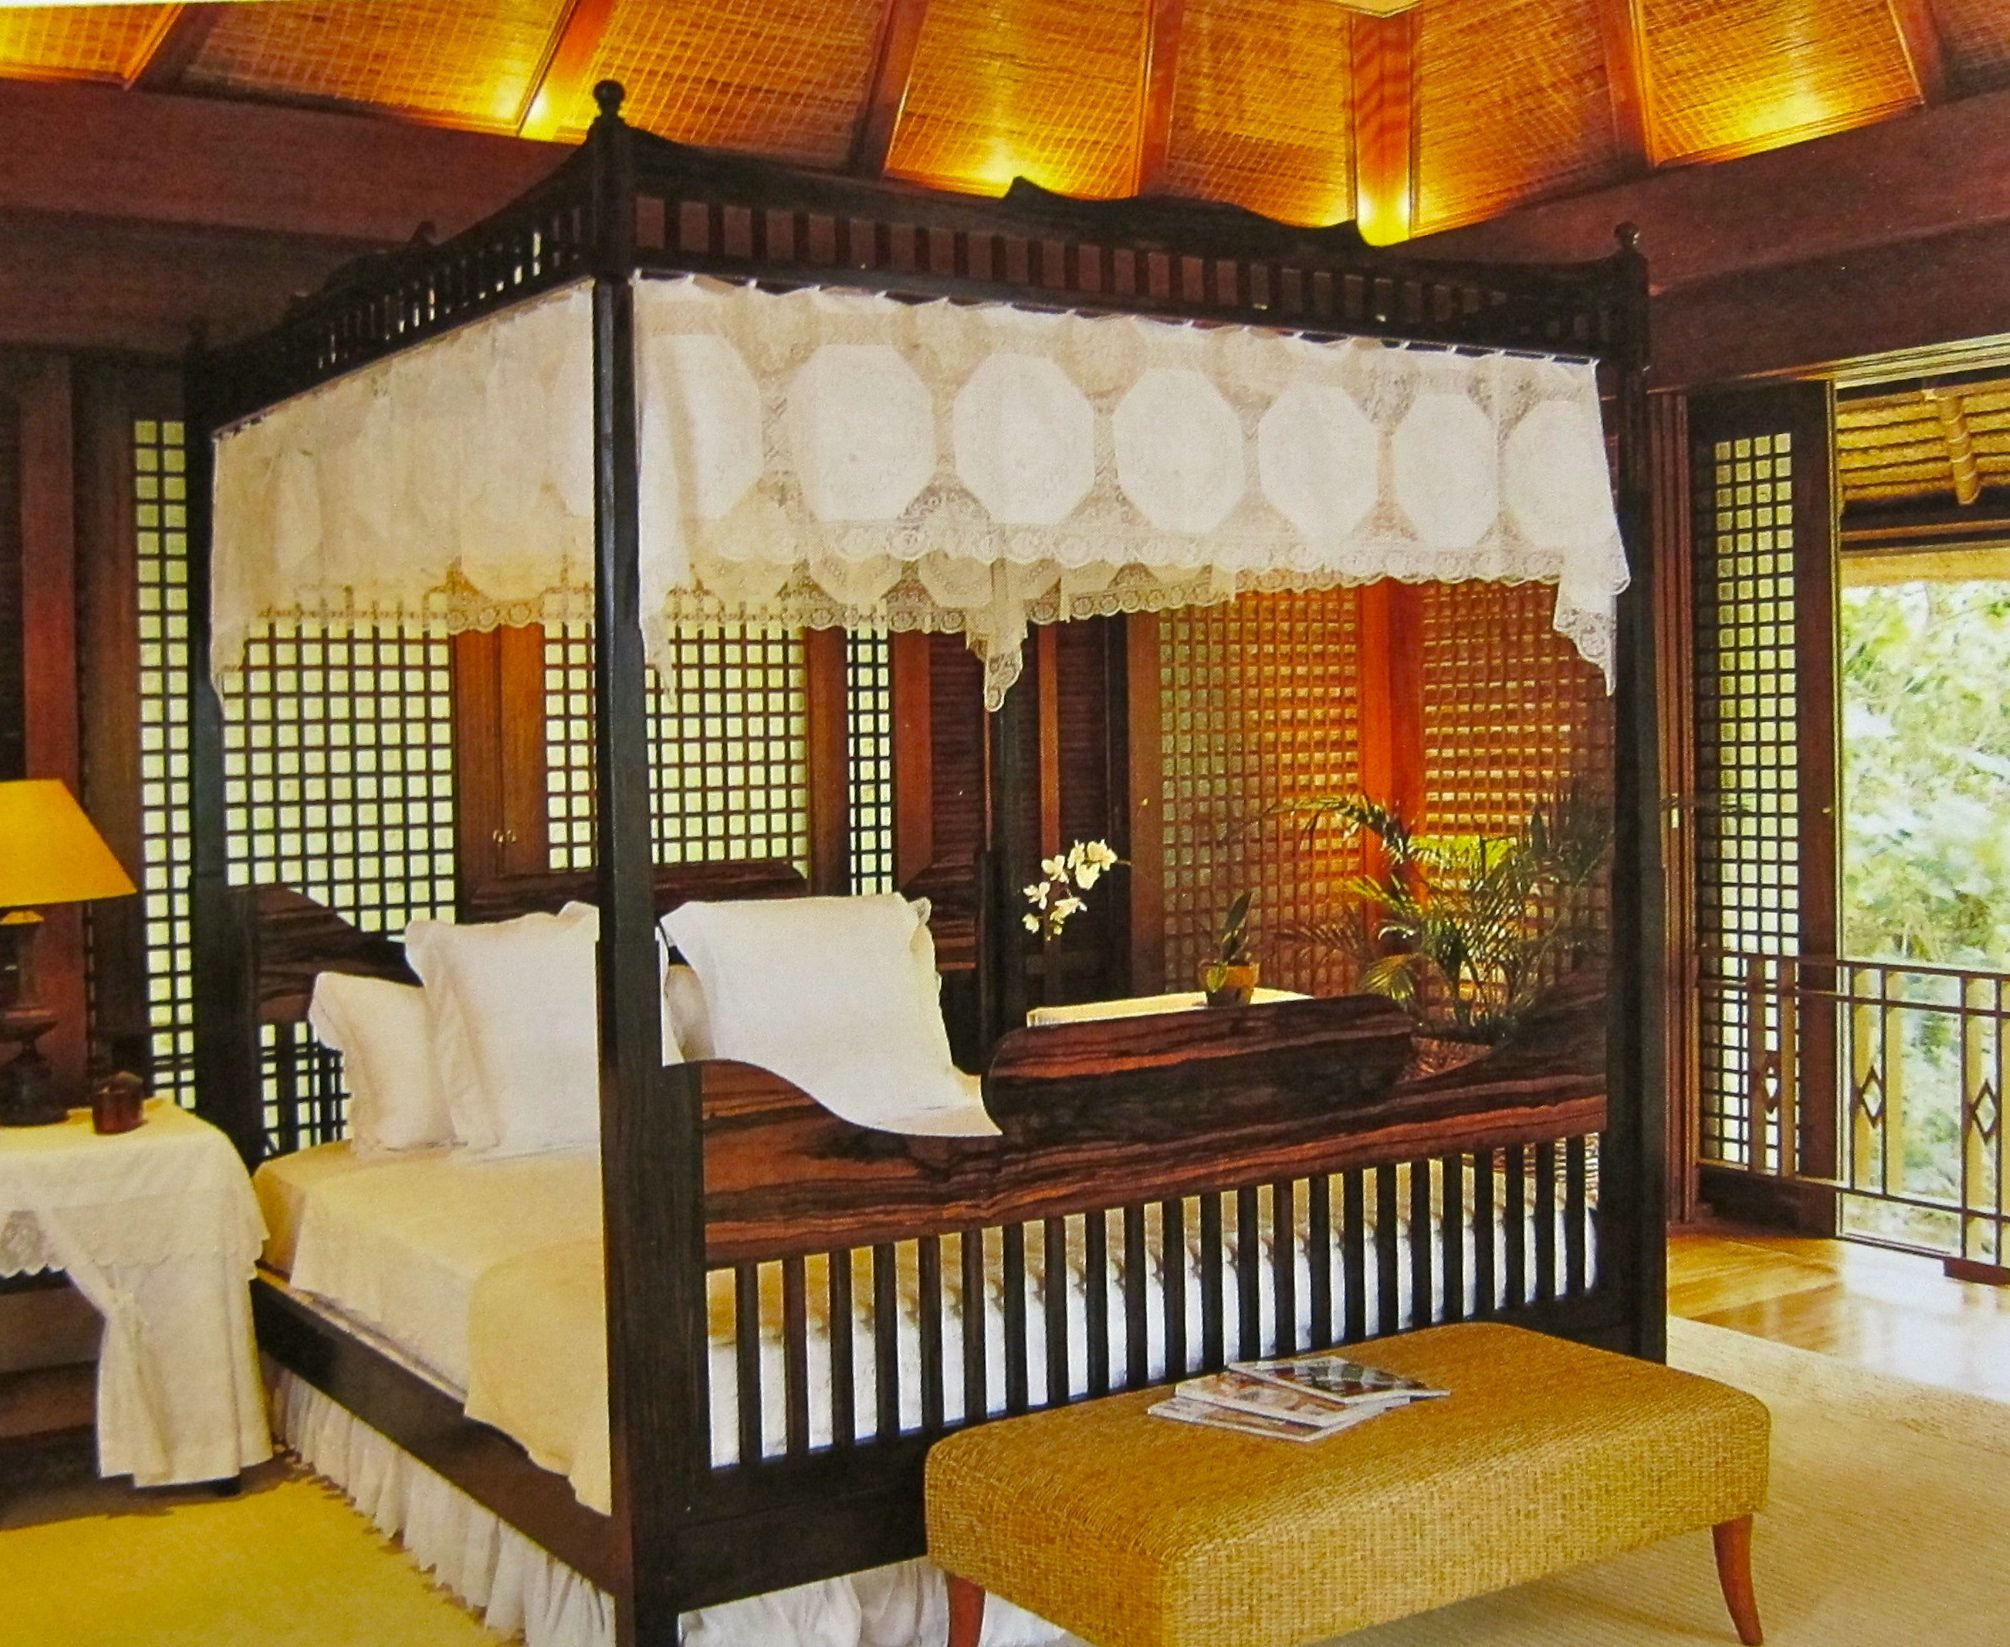 Philippine interiors philippine house pinterest for Native house interior designs